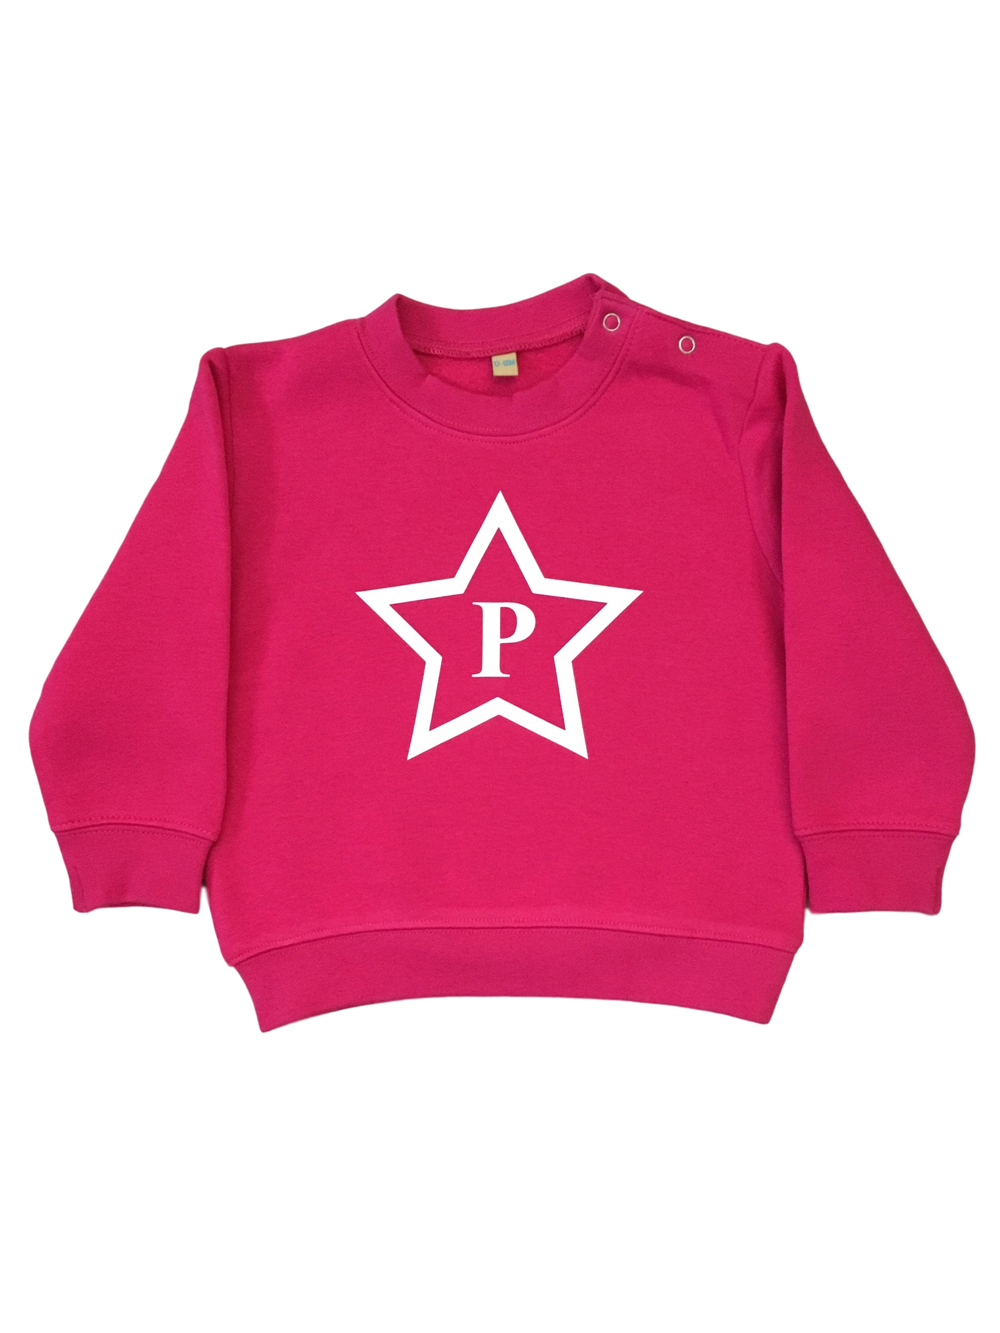 personalised kids clothes